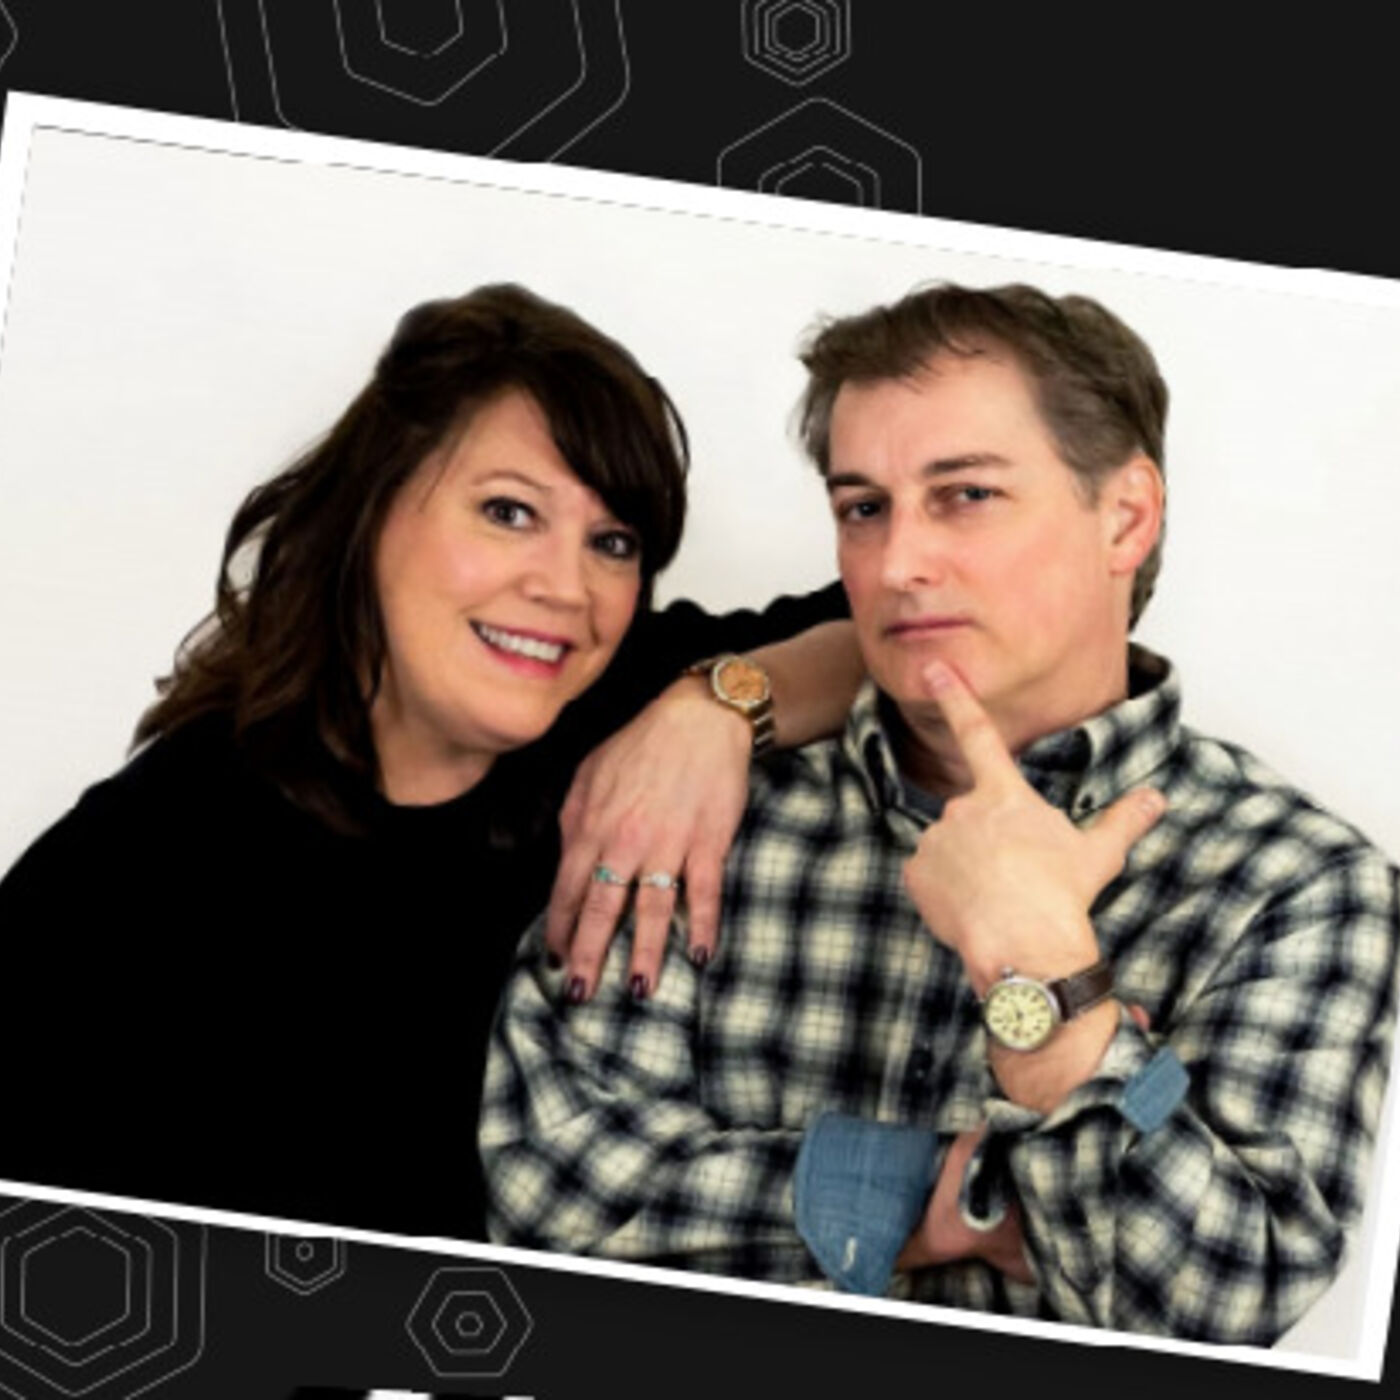 LIFT Your Story with David and Cindy Mulanos Podcasts Hosts Speaking to Love Money and Marriage